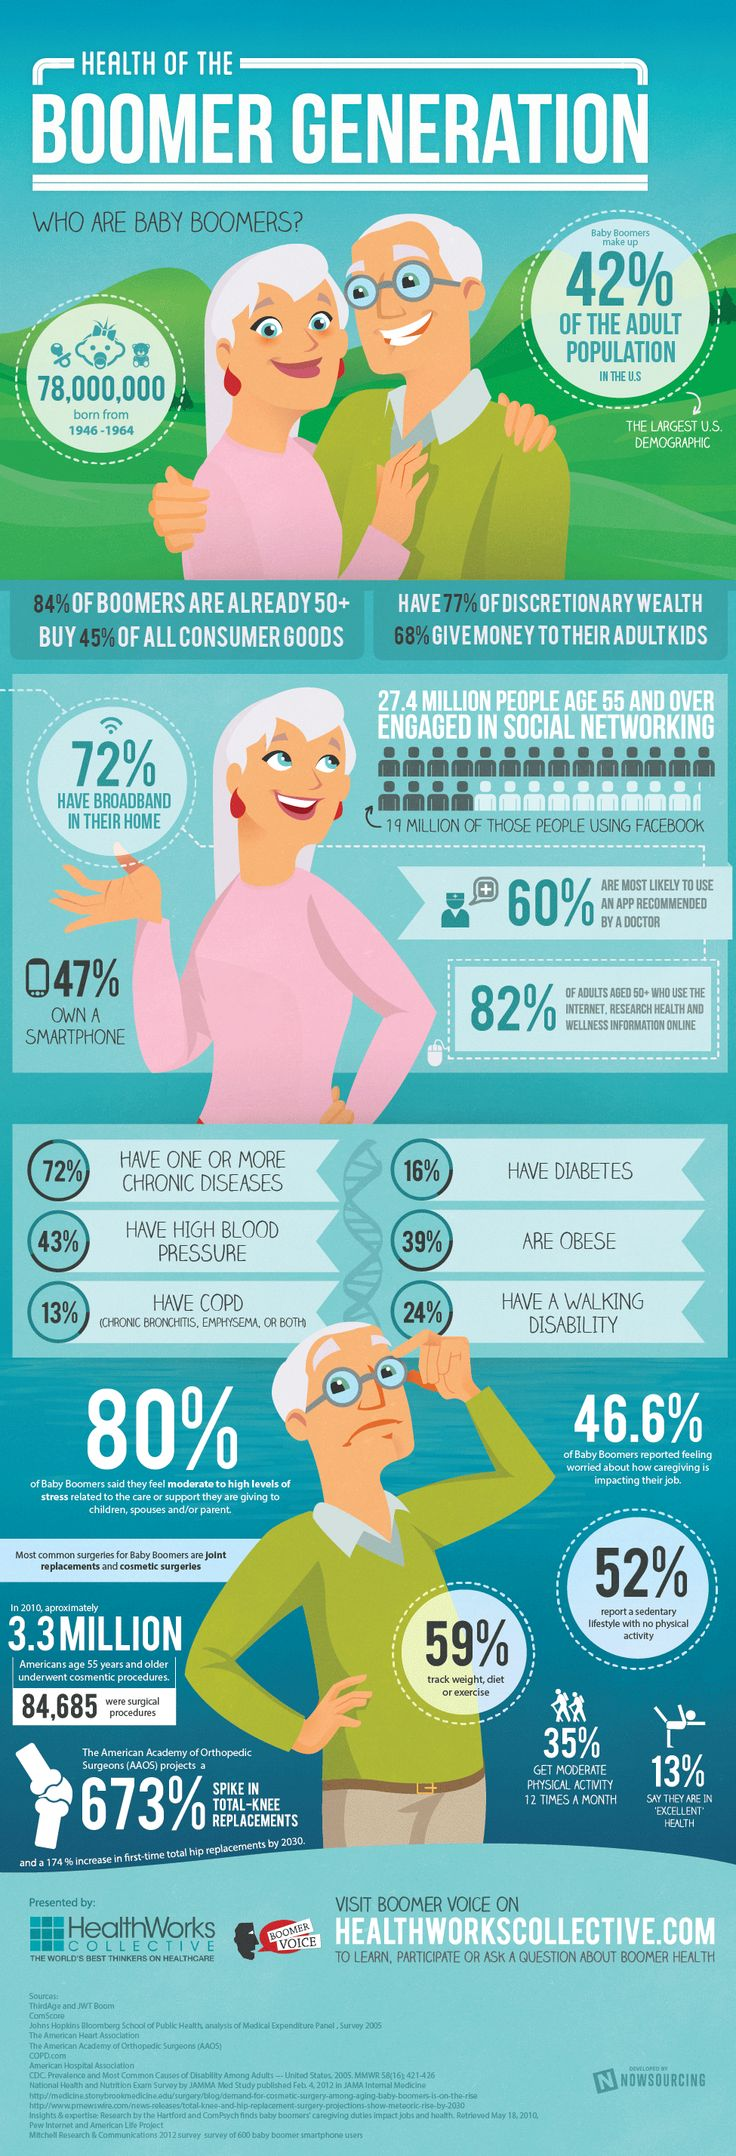 Baby Boomers and Health Care #INFOGRAPHIC, courtesy Healthworks Collective